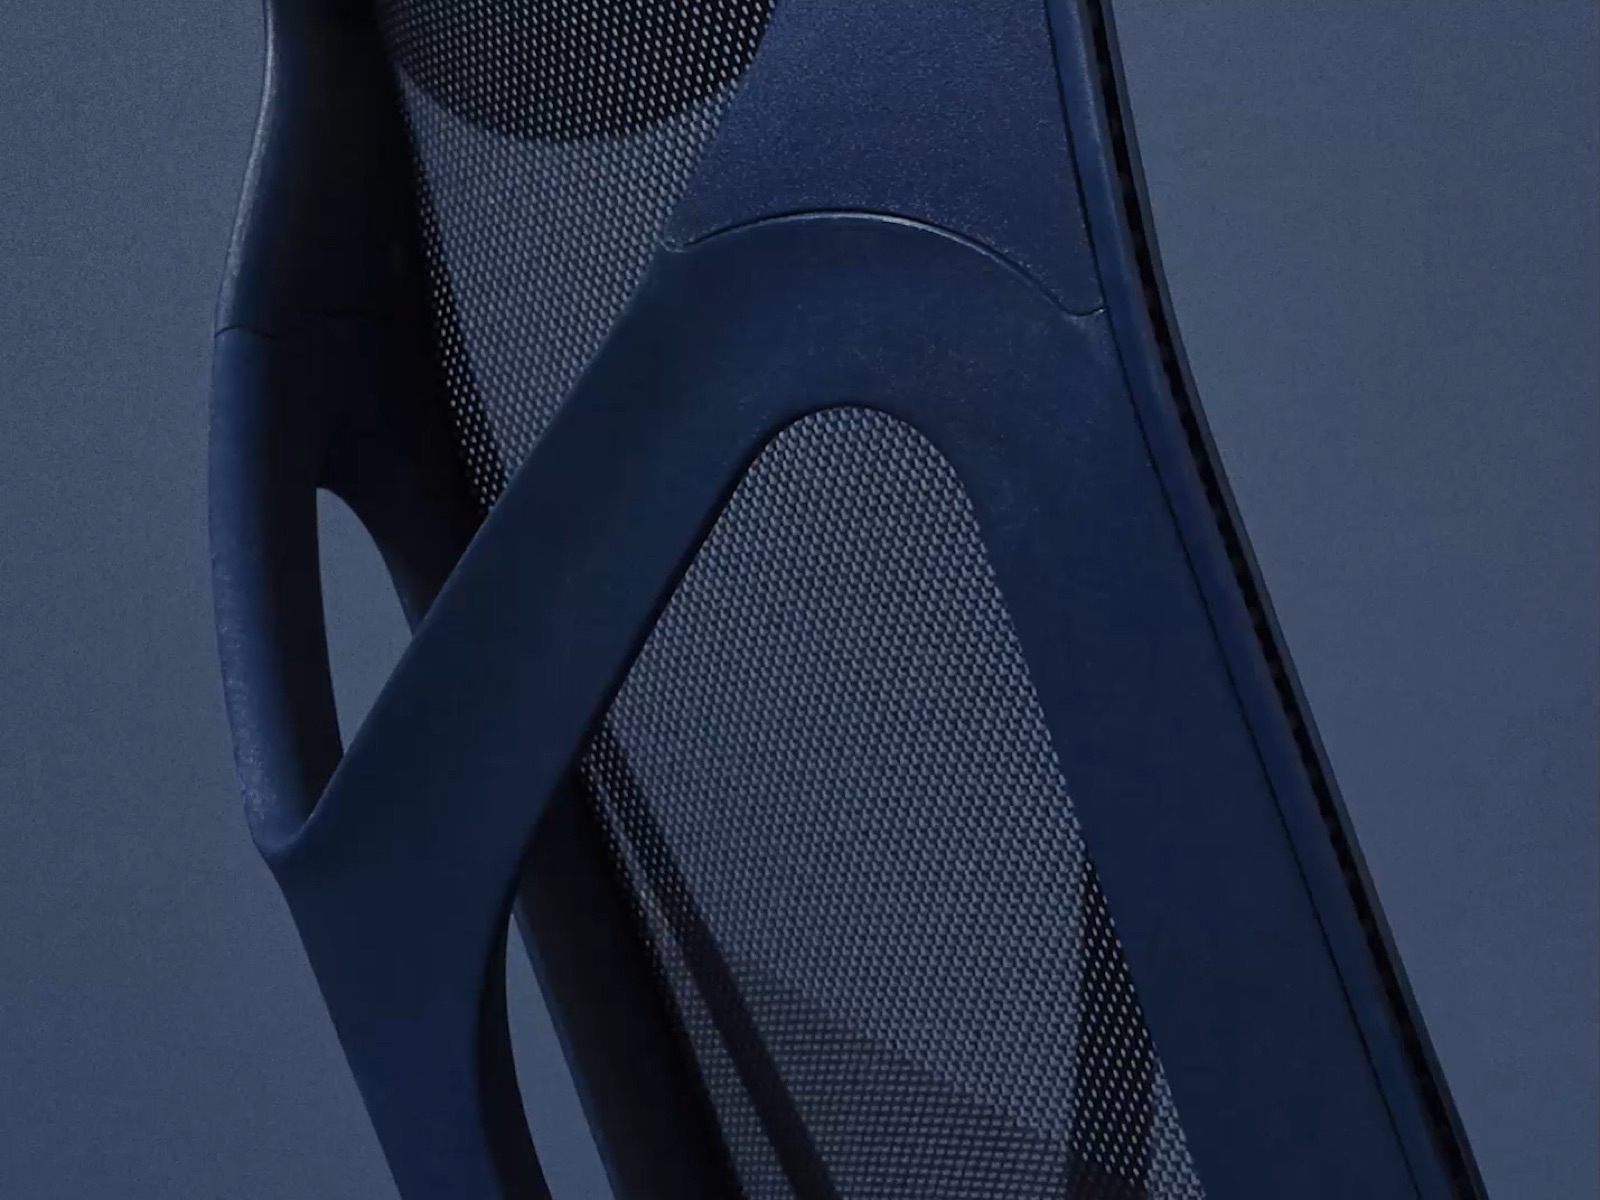 A close-up from behind of the frame of a Nightfall dark blue Cosm ergonomic desk chair.